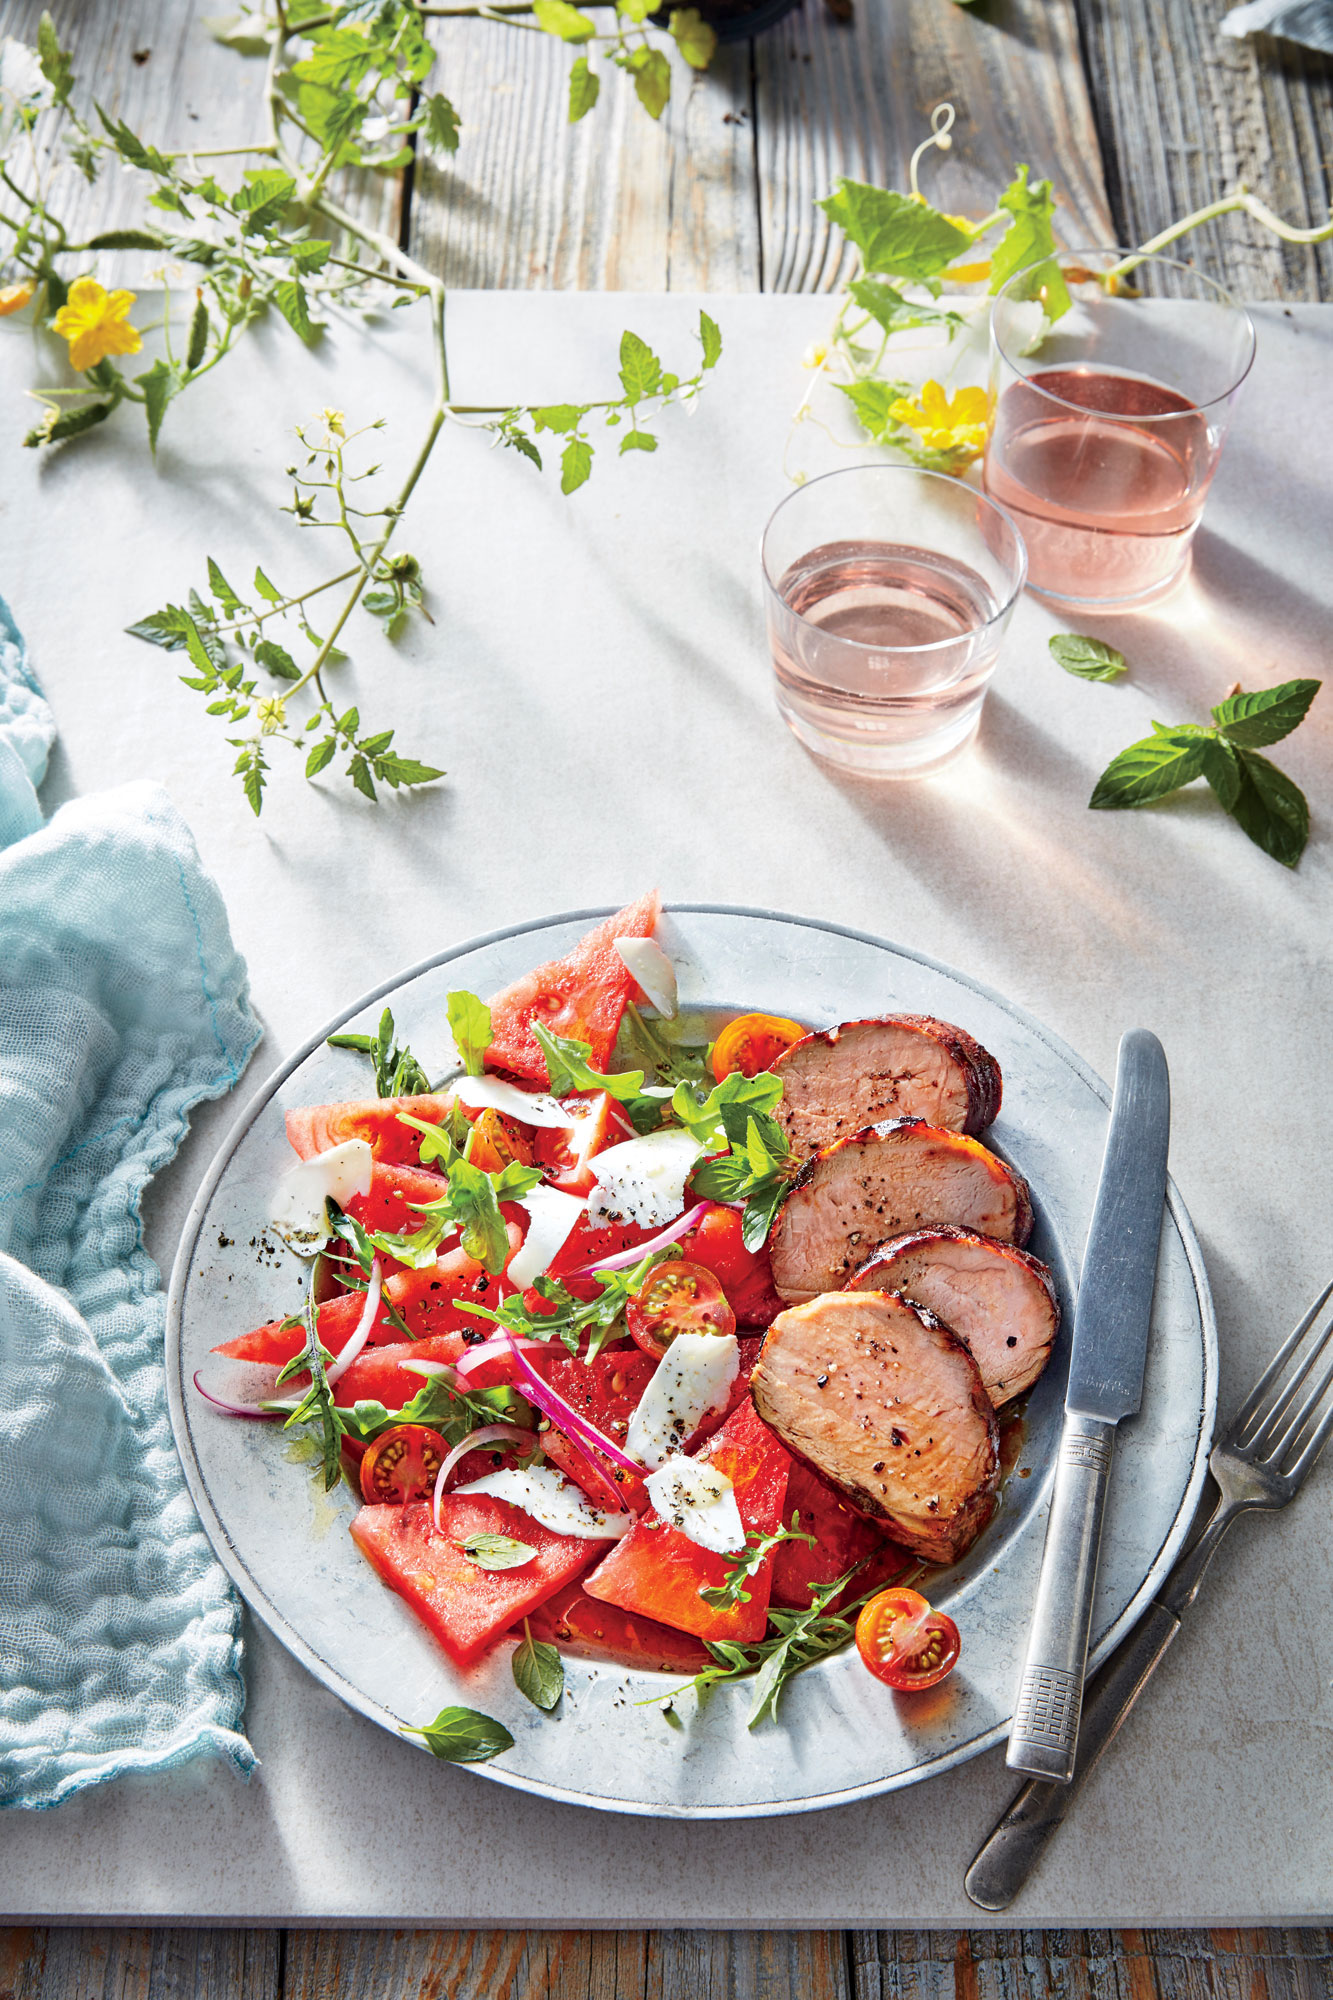 Peach-Glazed Pork Tenderloin